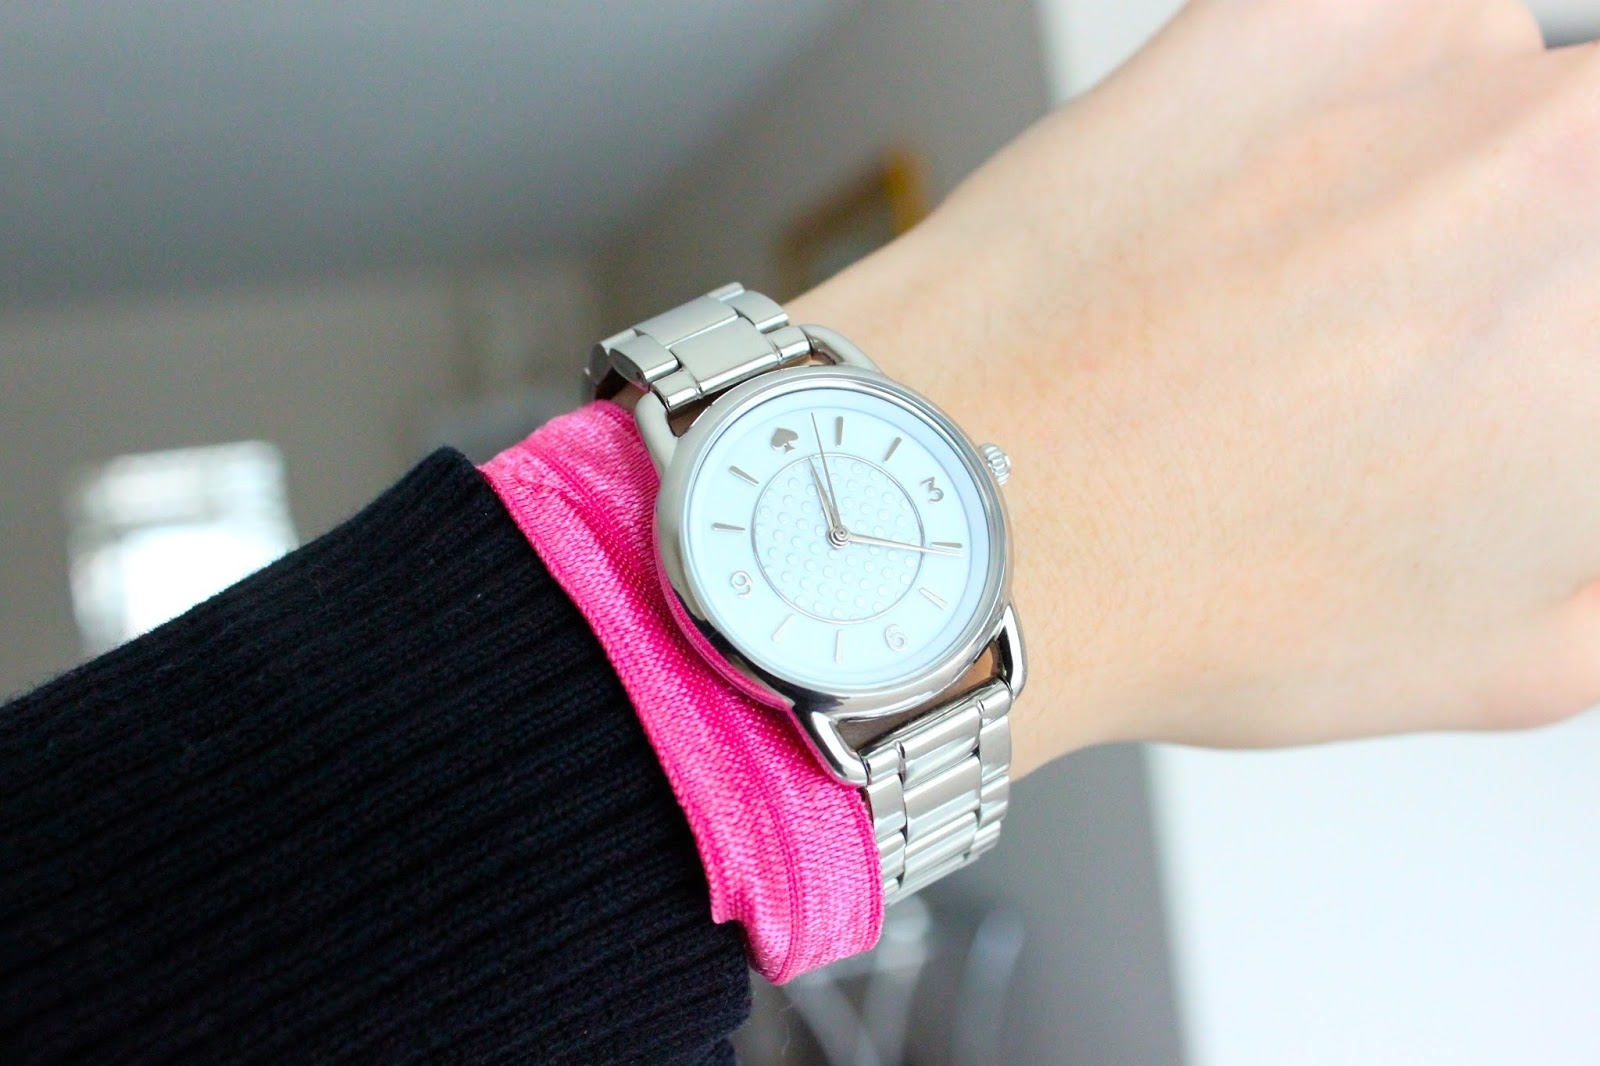 Friday Favorites 9 : Friday favorites watches for tiny wrists and amazon prime belle